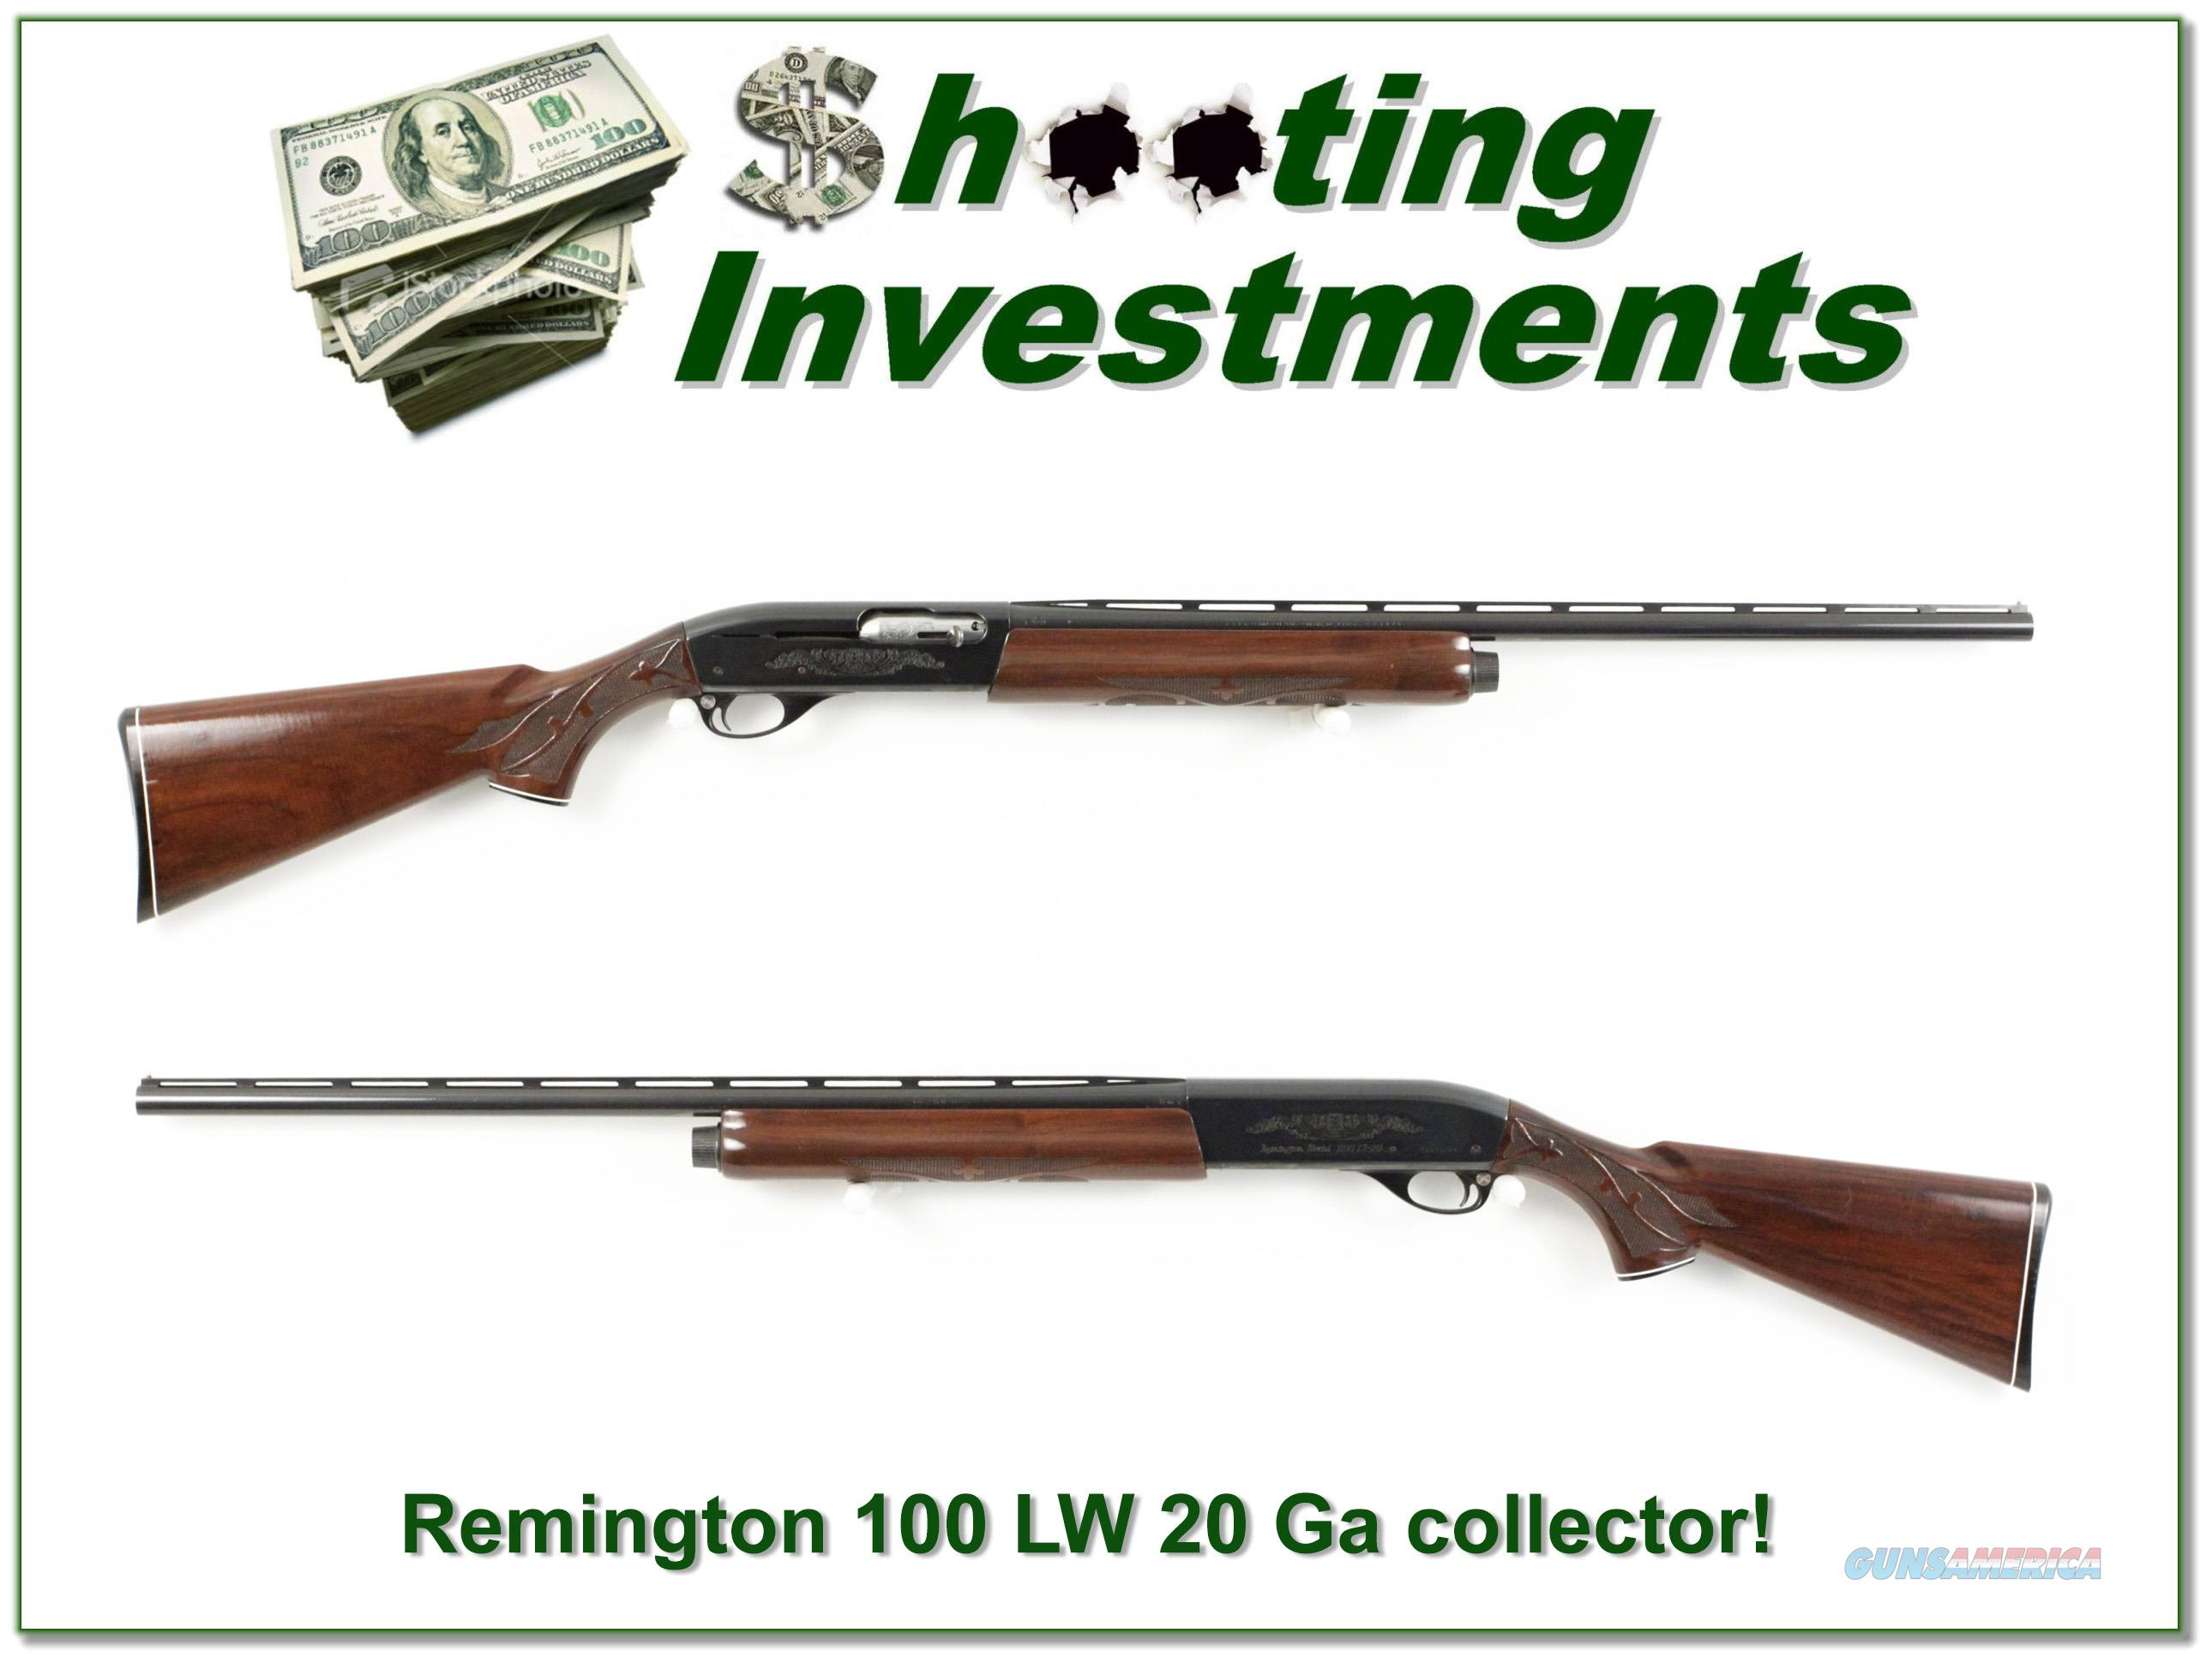 Remington 1100 LT-20 20 Gauge Vent Rib Exc Cond!  Guns > Shotguns > Remington Shotguns  > Autoloaders > Hunting